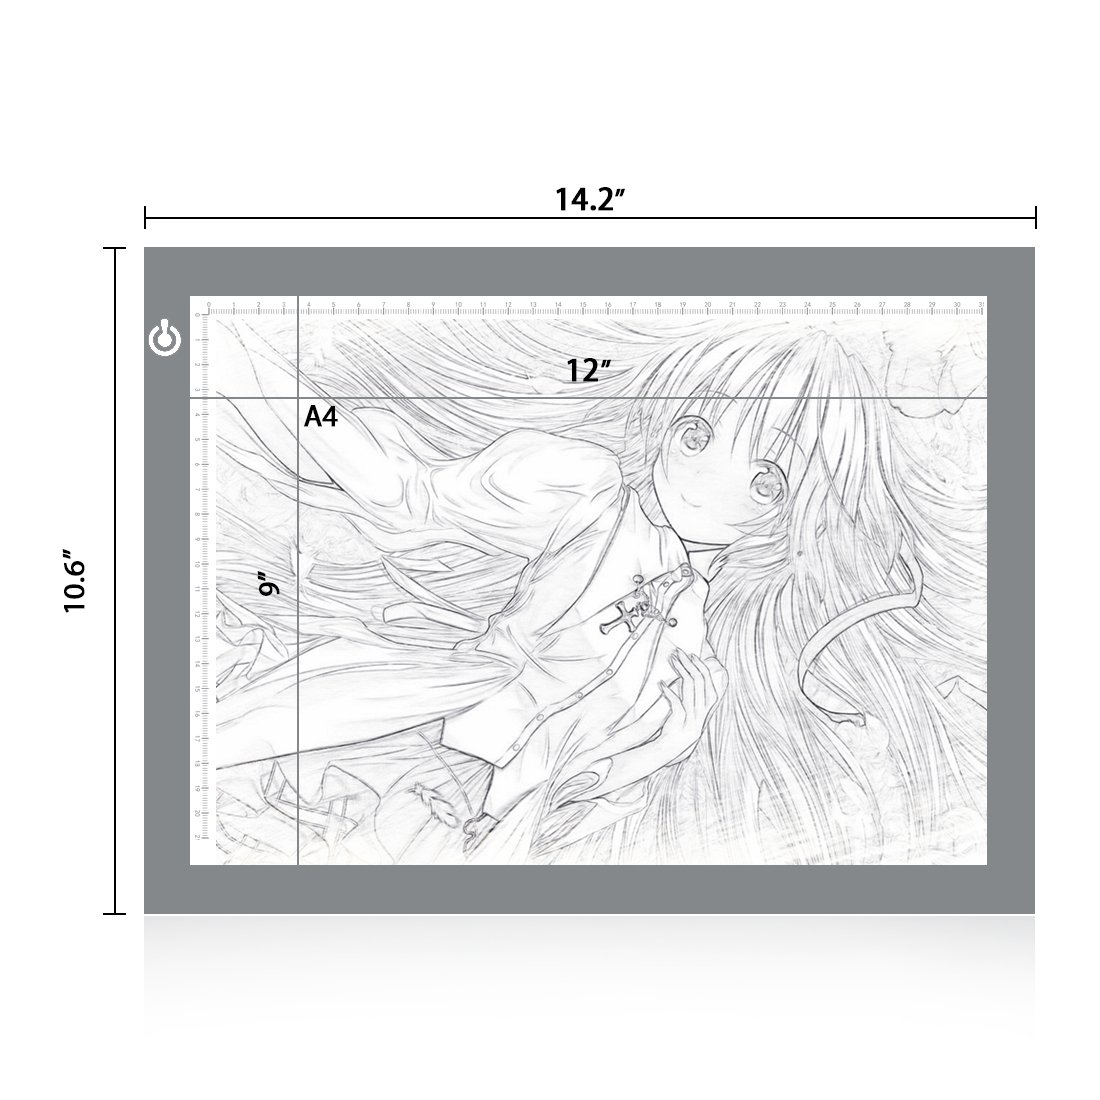 NXENTC A4 Tracing Light Pad, Ultra-thin Tracing Light Box USB Power Artcraft Tracing Light Table for Artists, Drawing, Sketching, Animation 4336950963